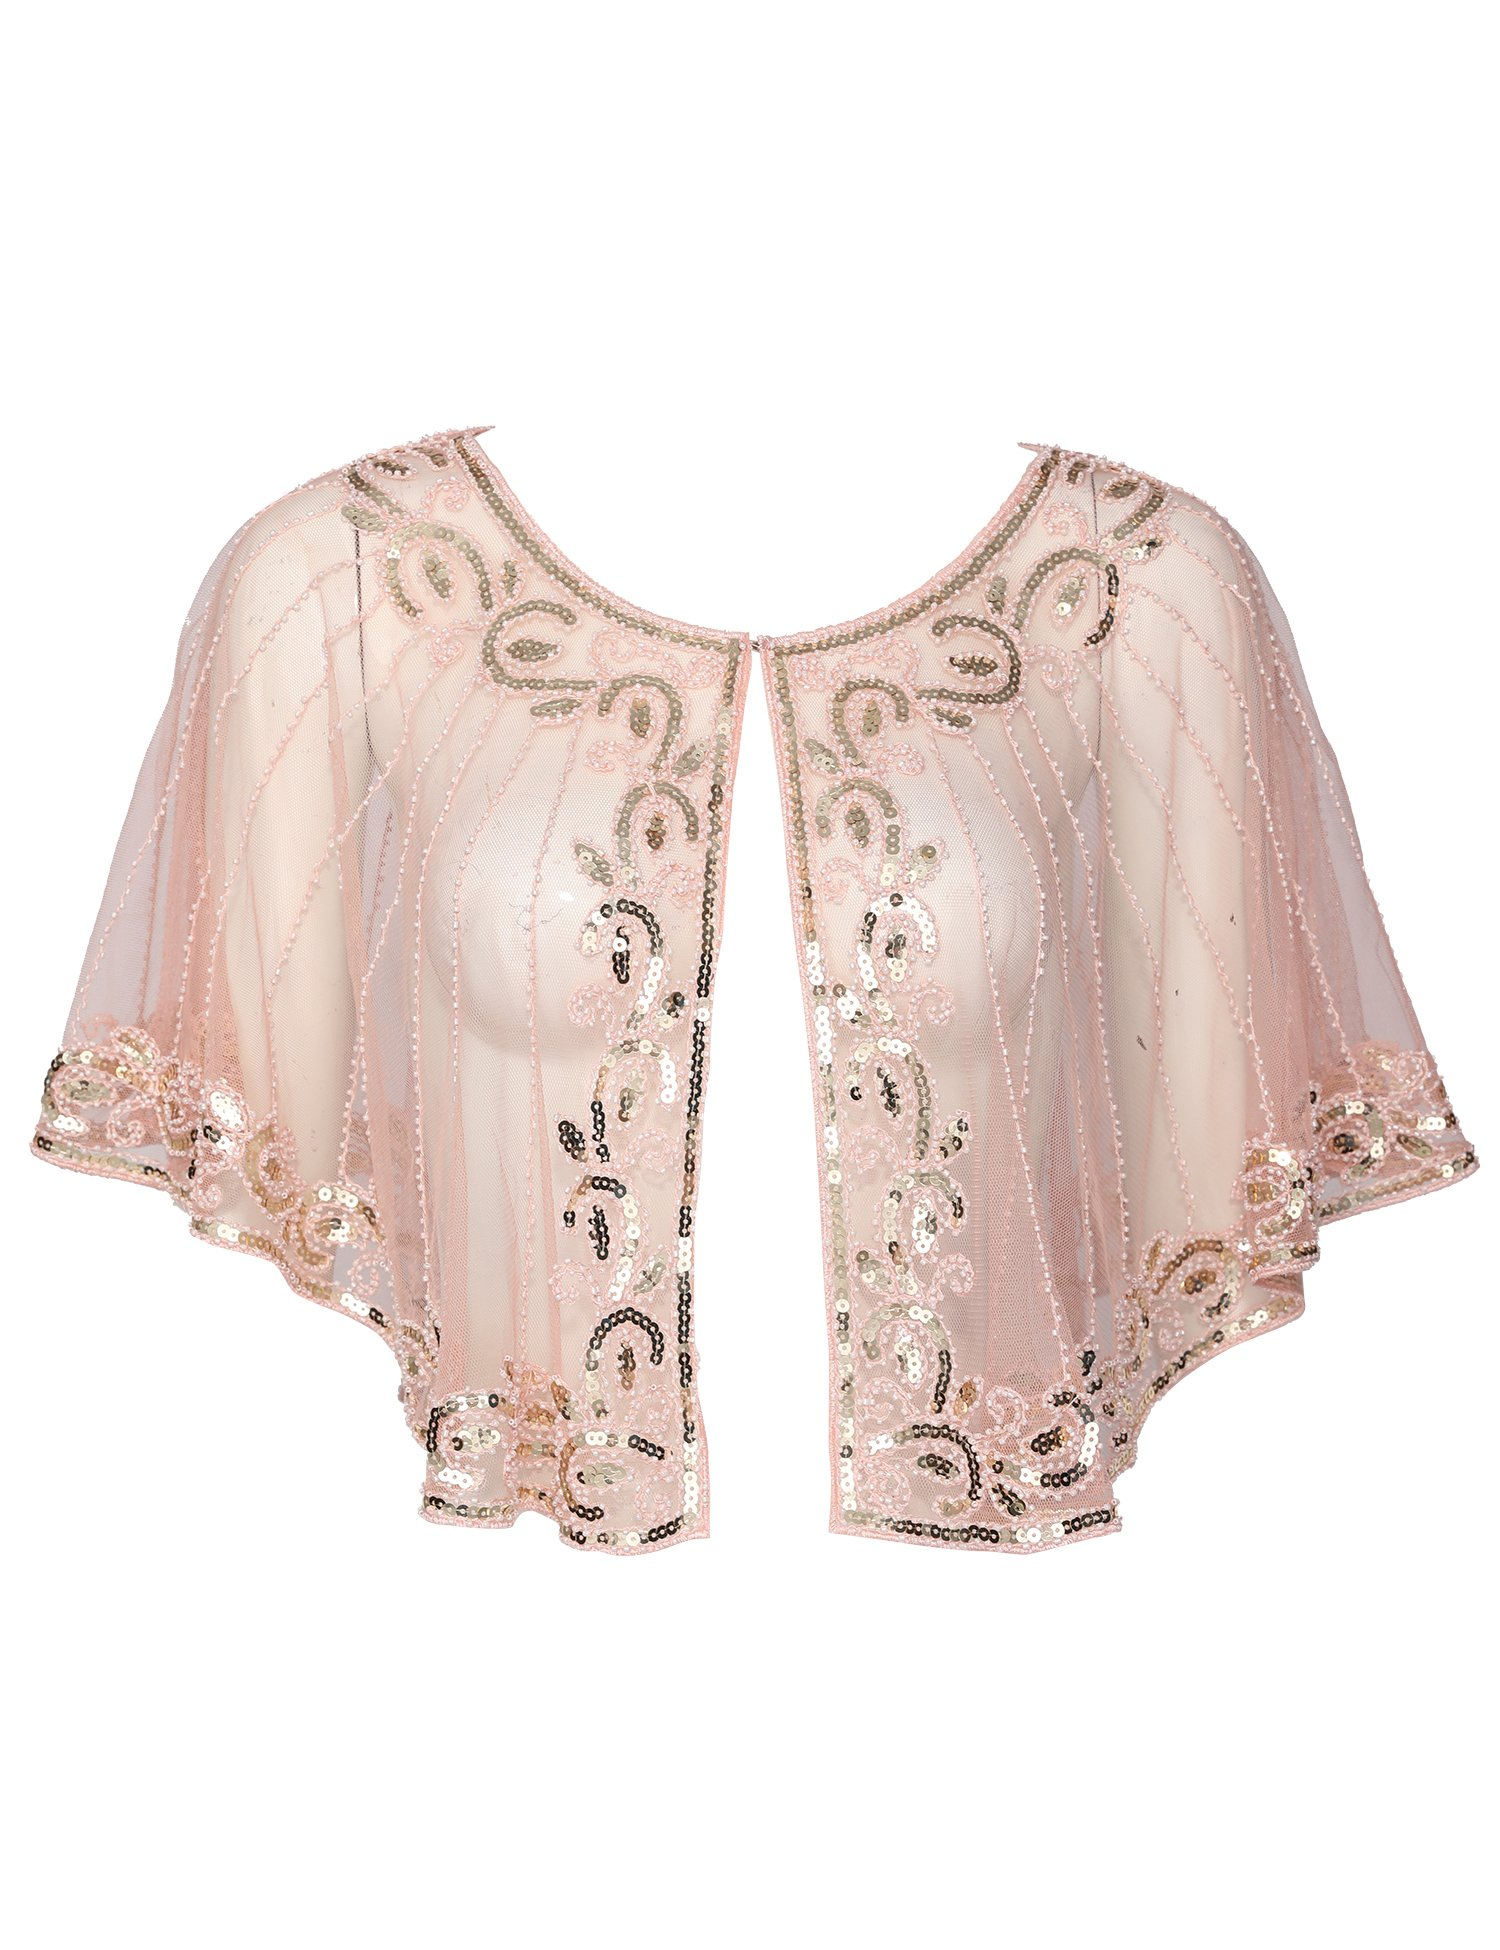 Vintage 1920s Shawl Wraps Sequin Beaded Evening Cape Wedding Shawl Bolero Cover Up (Champagne Pink)